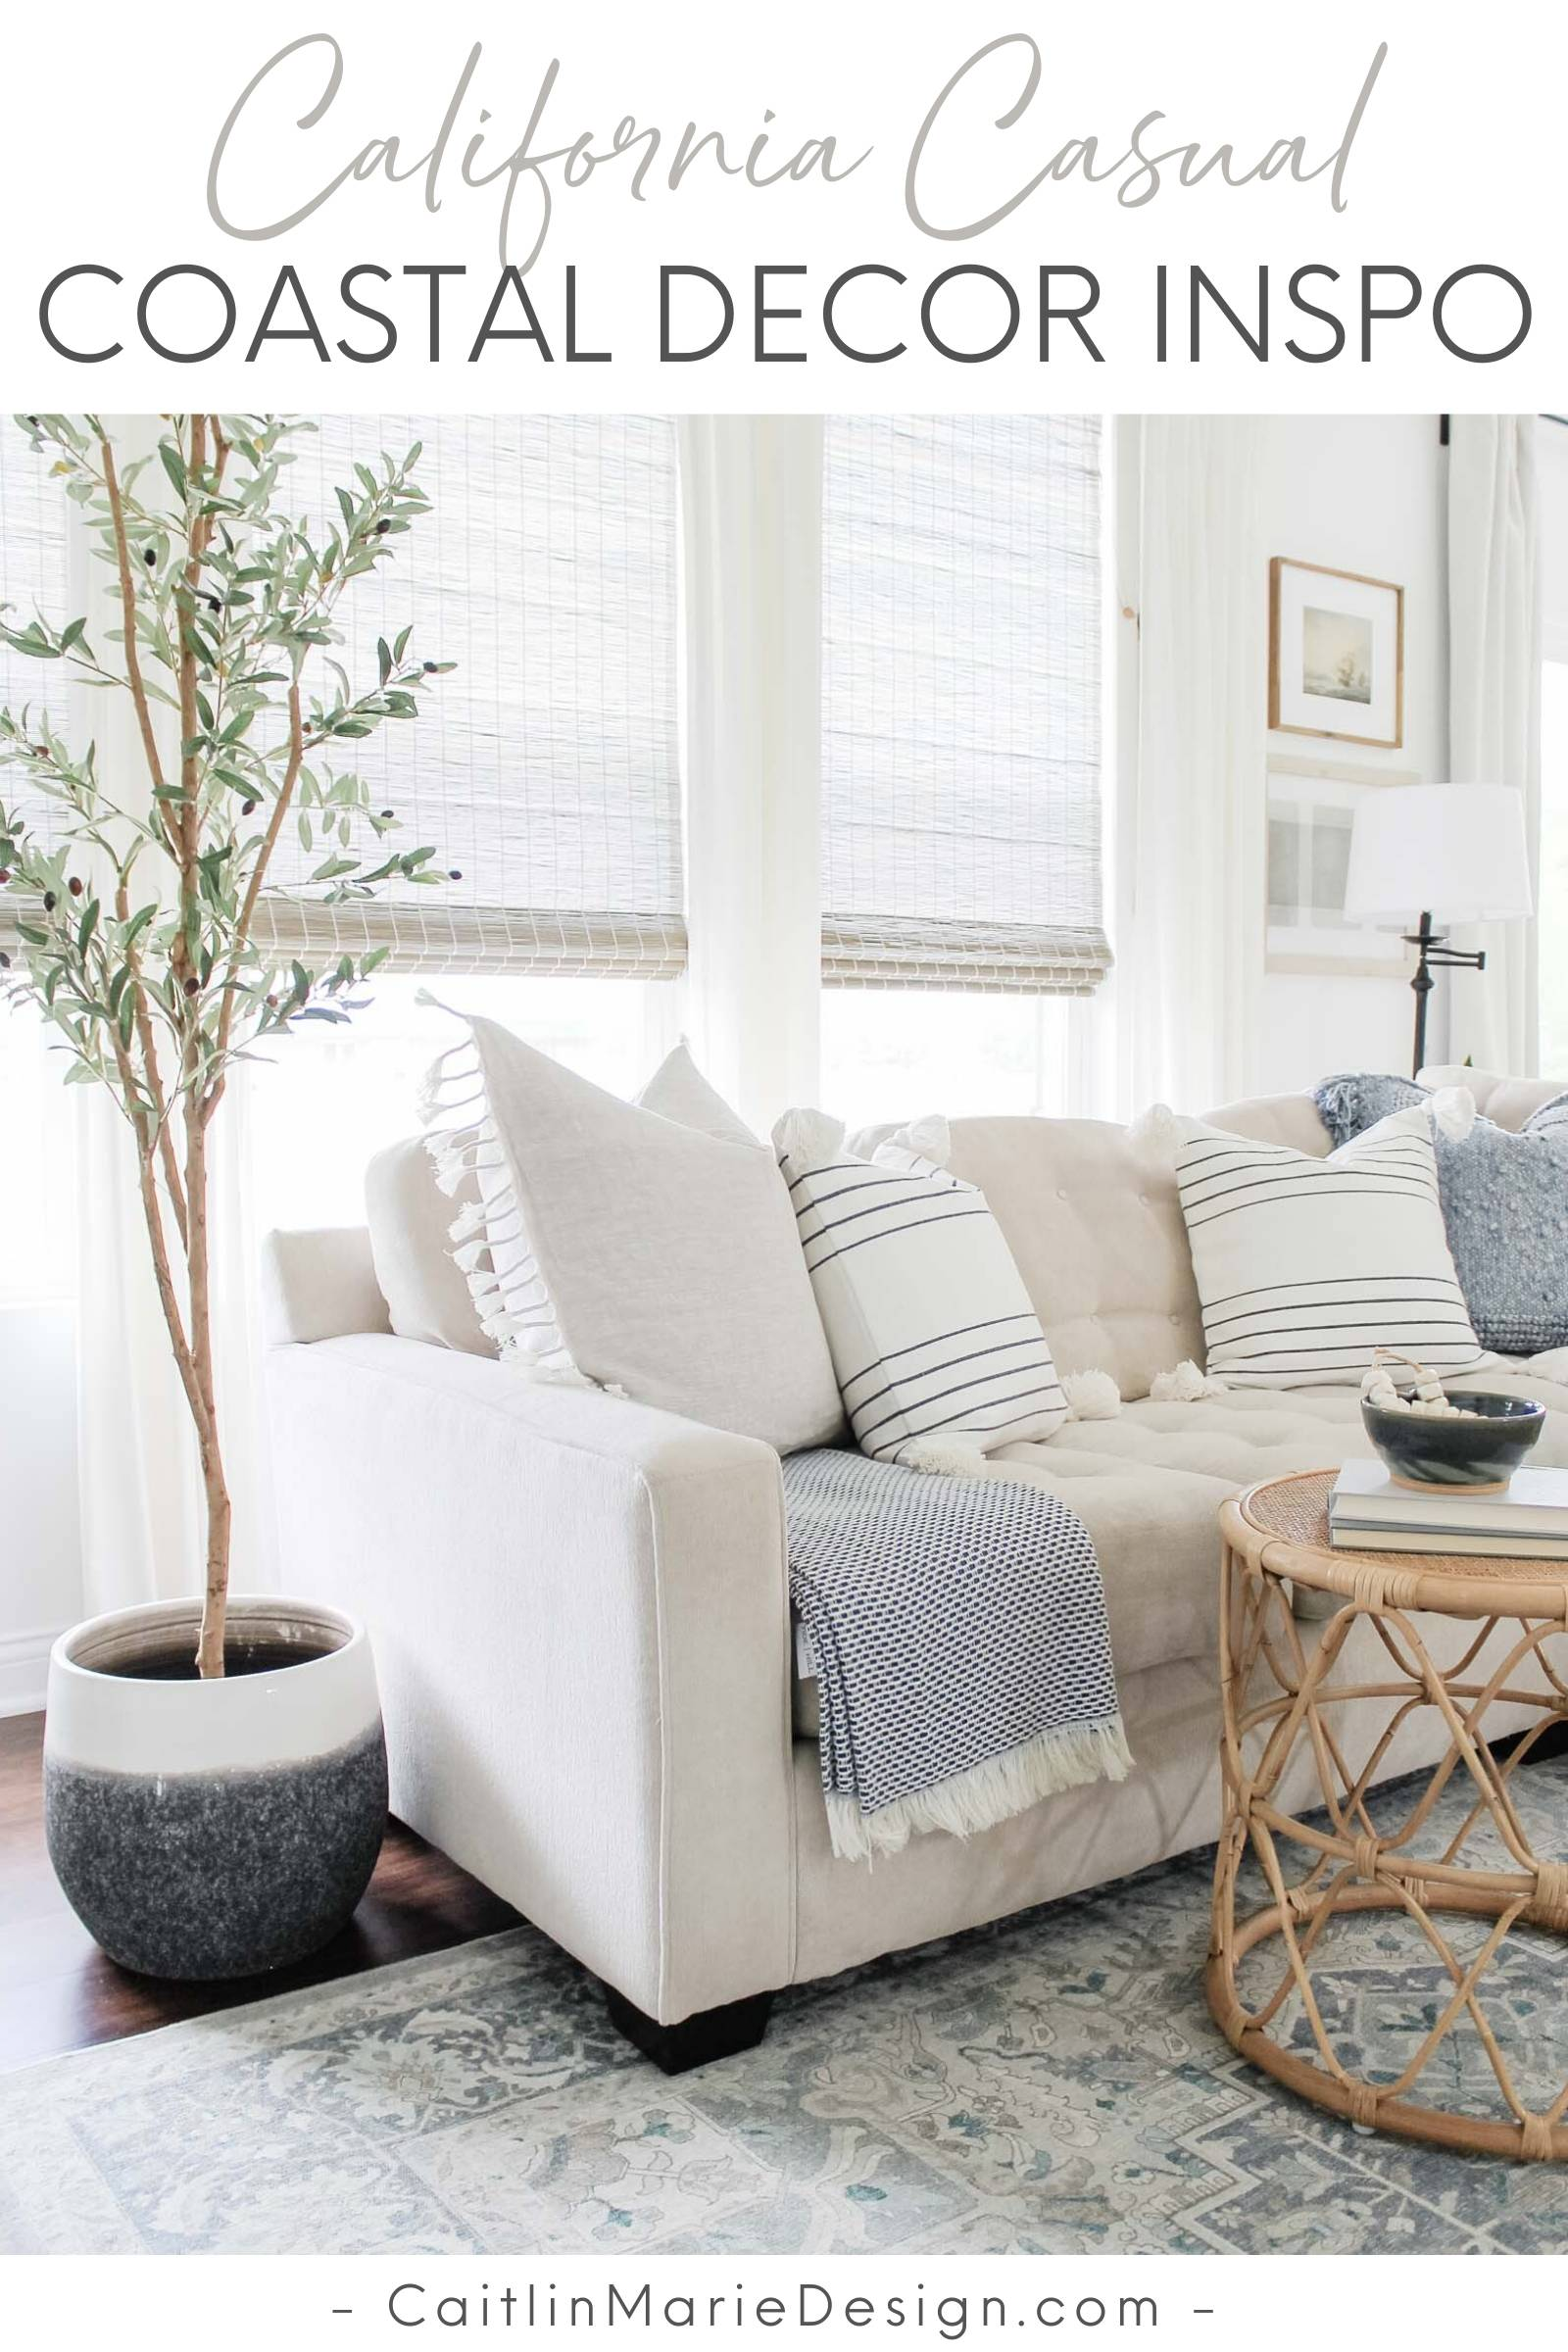 Coastal Home Decor Refresh with Serena & Lily | coastal living room, light and airy decor, California casual, olive tree, rattan side table, Serena & Lily pillows, coastal decor